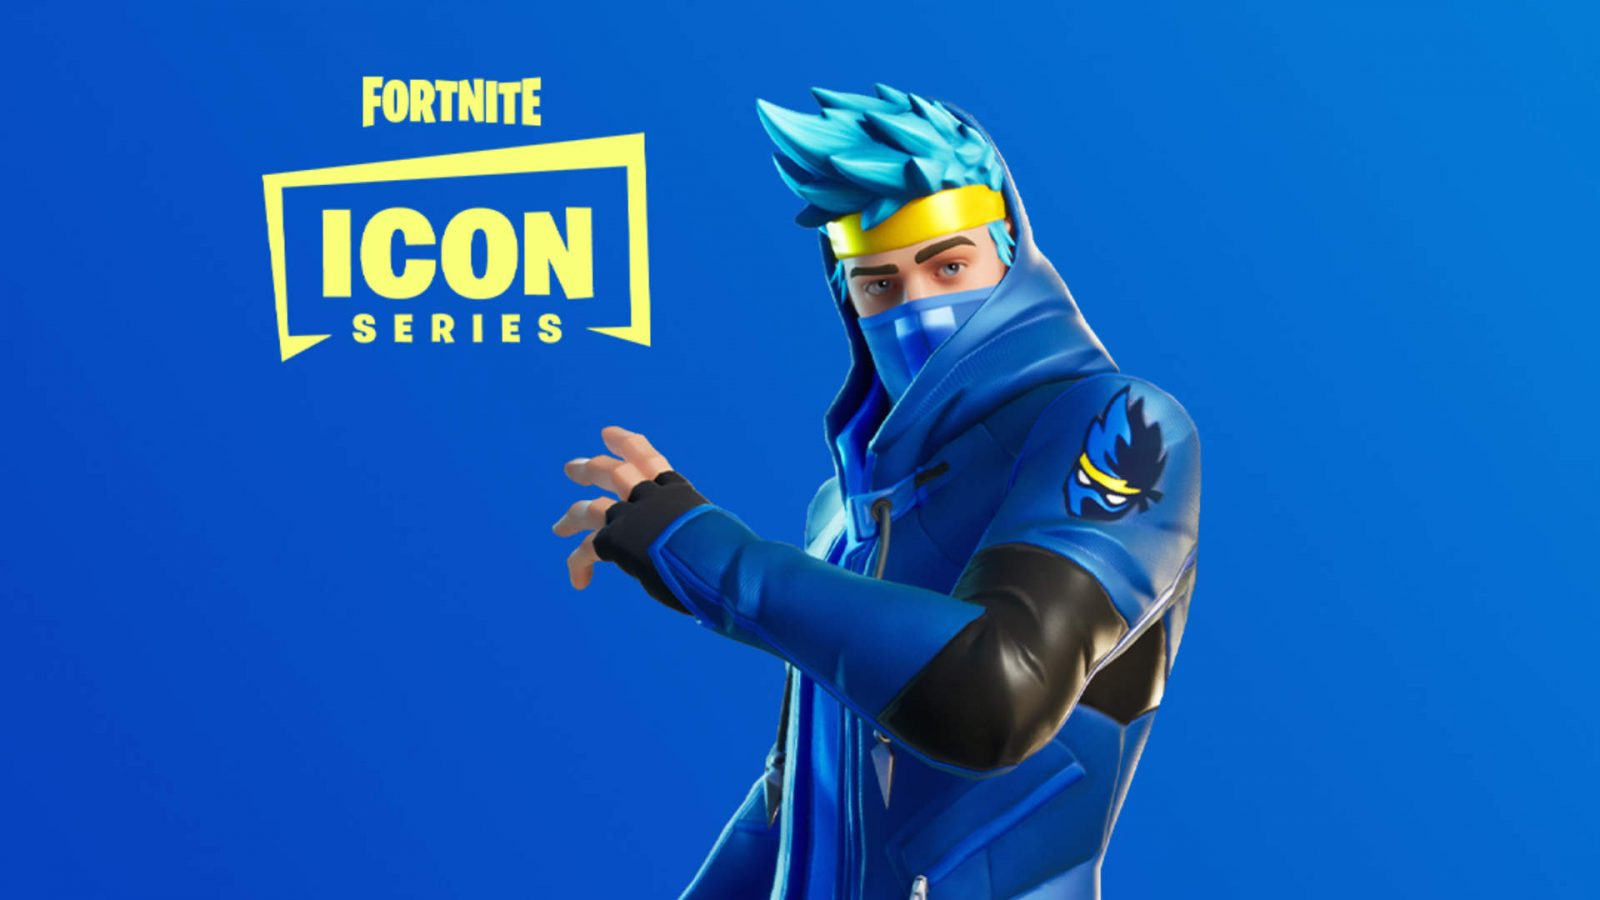 Fortnite Is Introducing Skins Based mostly on Streaming Celebs, Beginning With Ninja